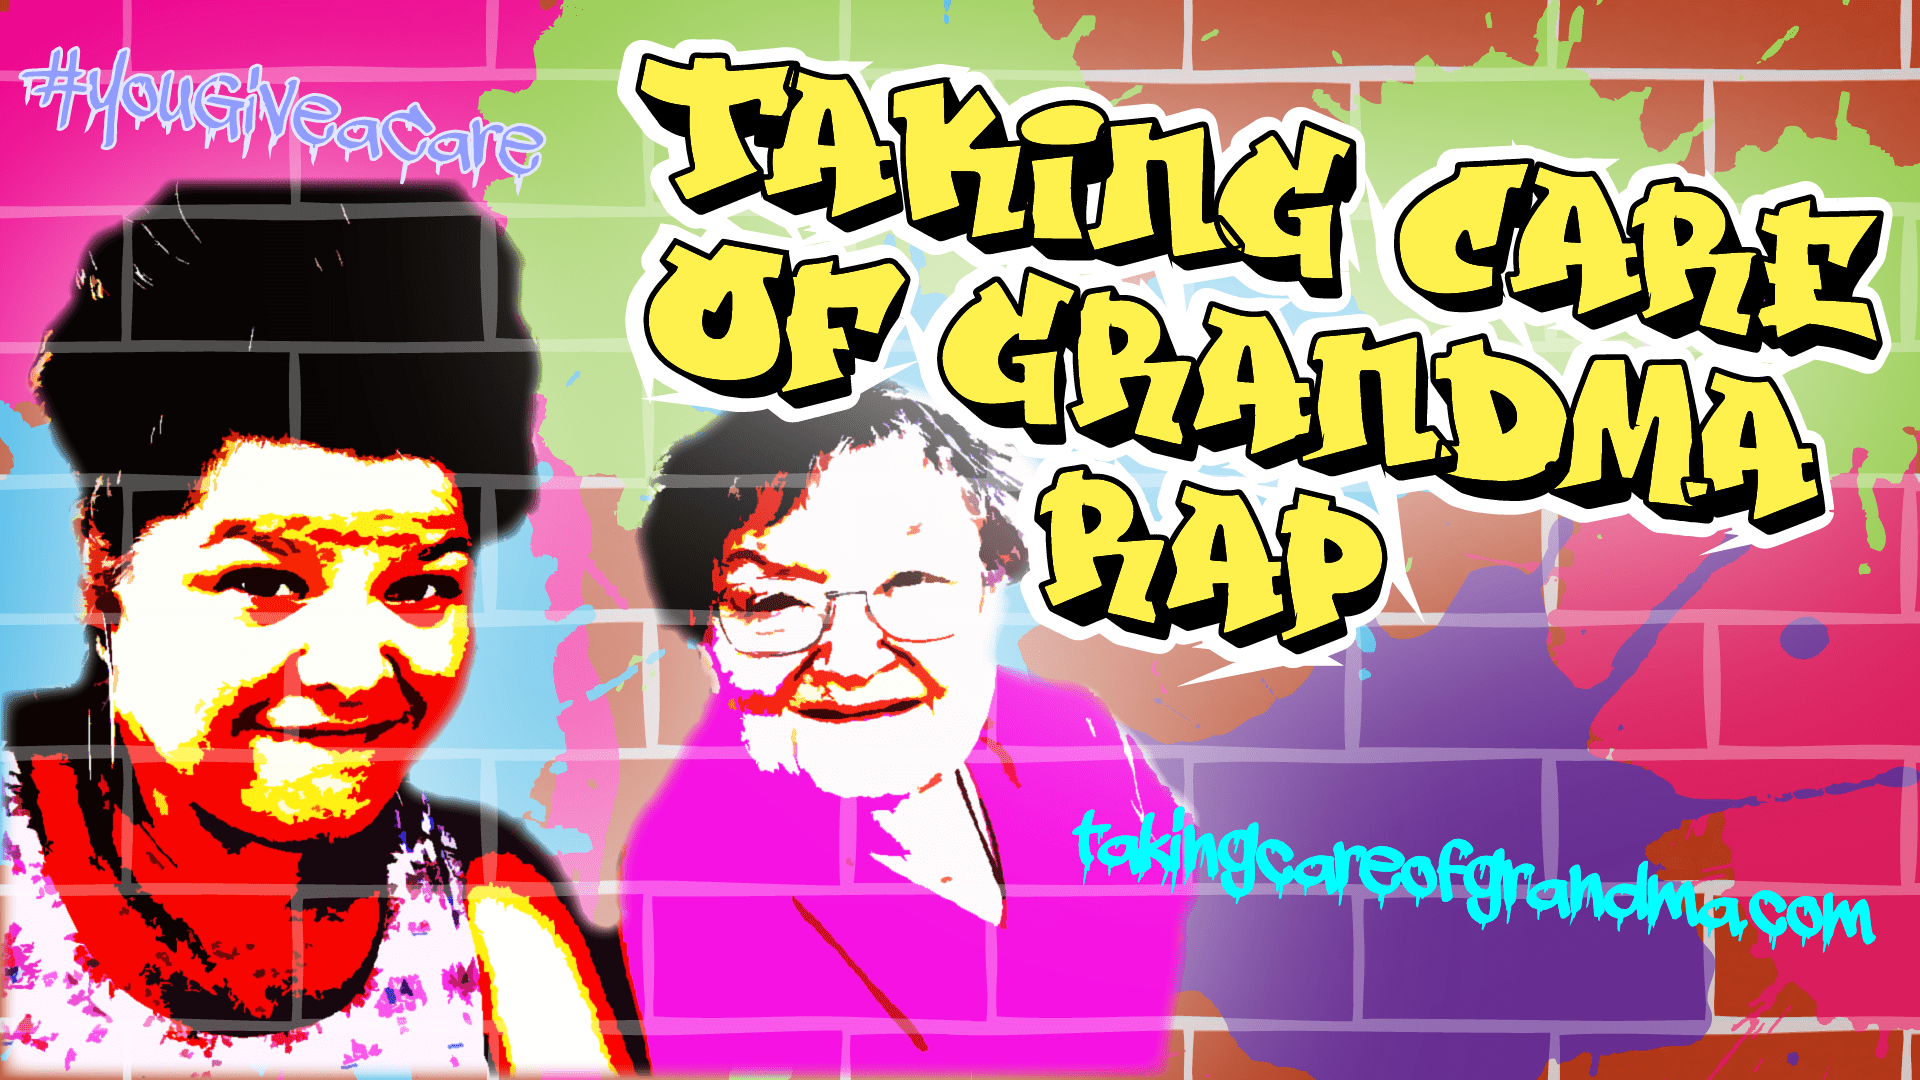 Graphic: Taking Care of Grandma Rap